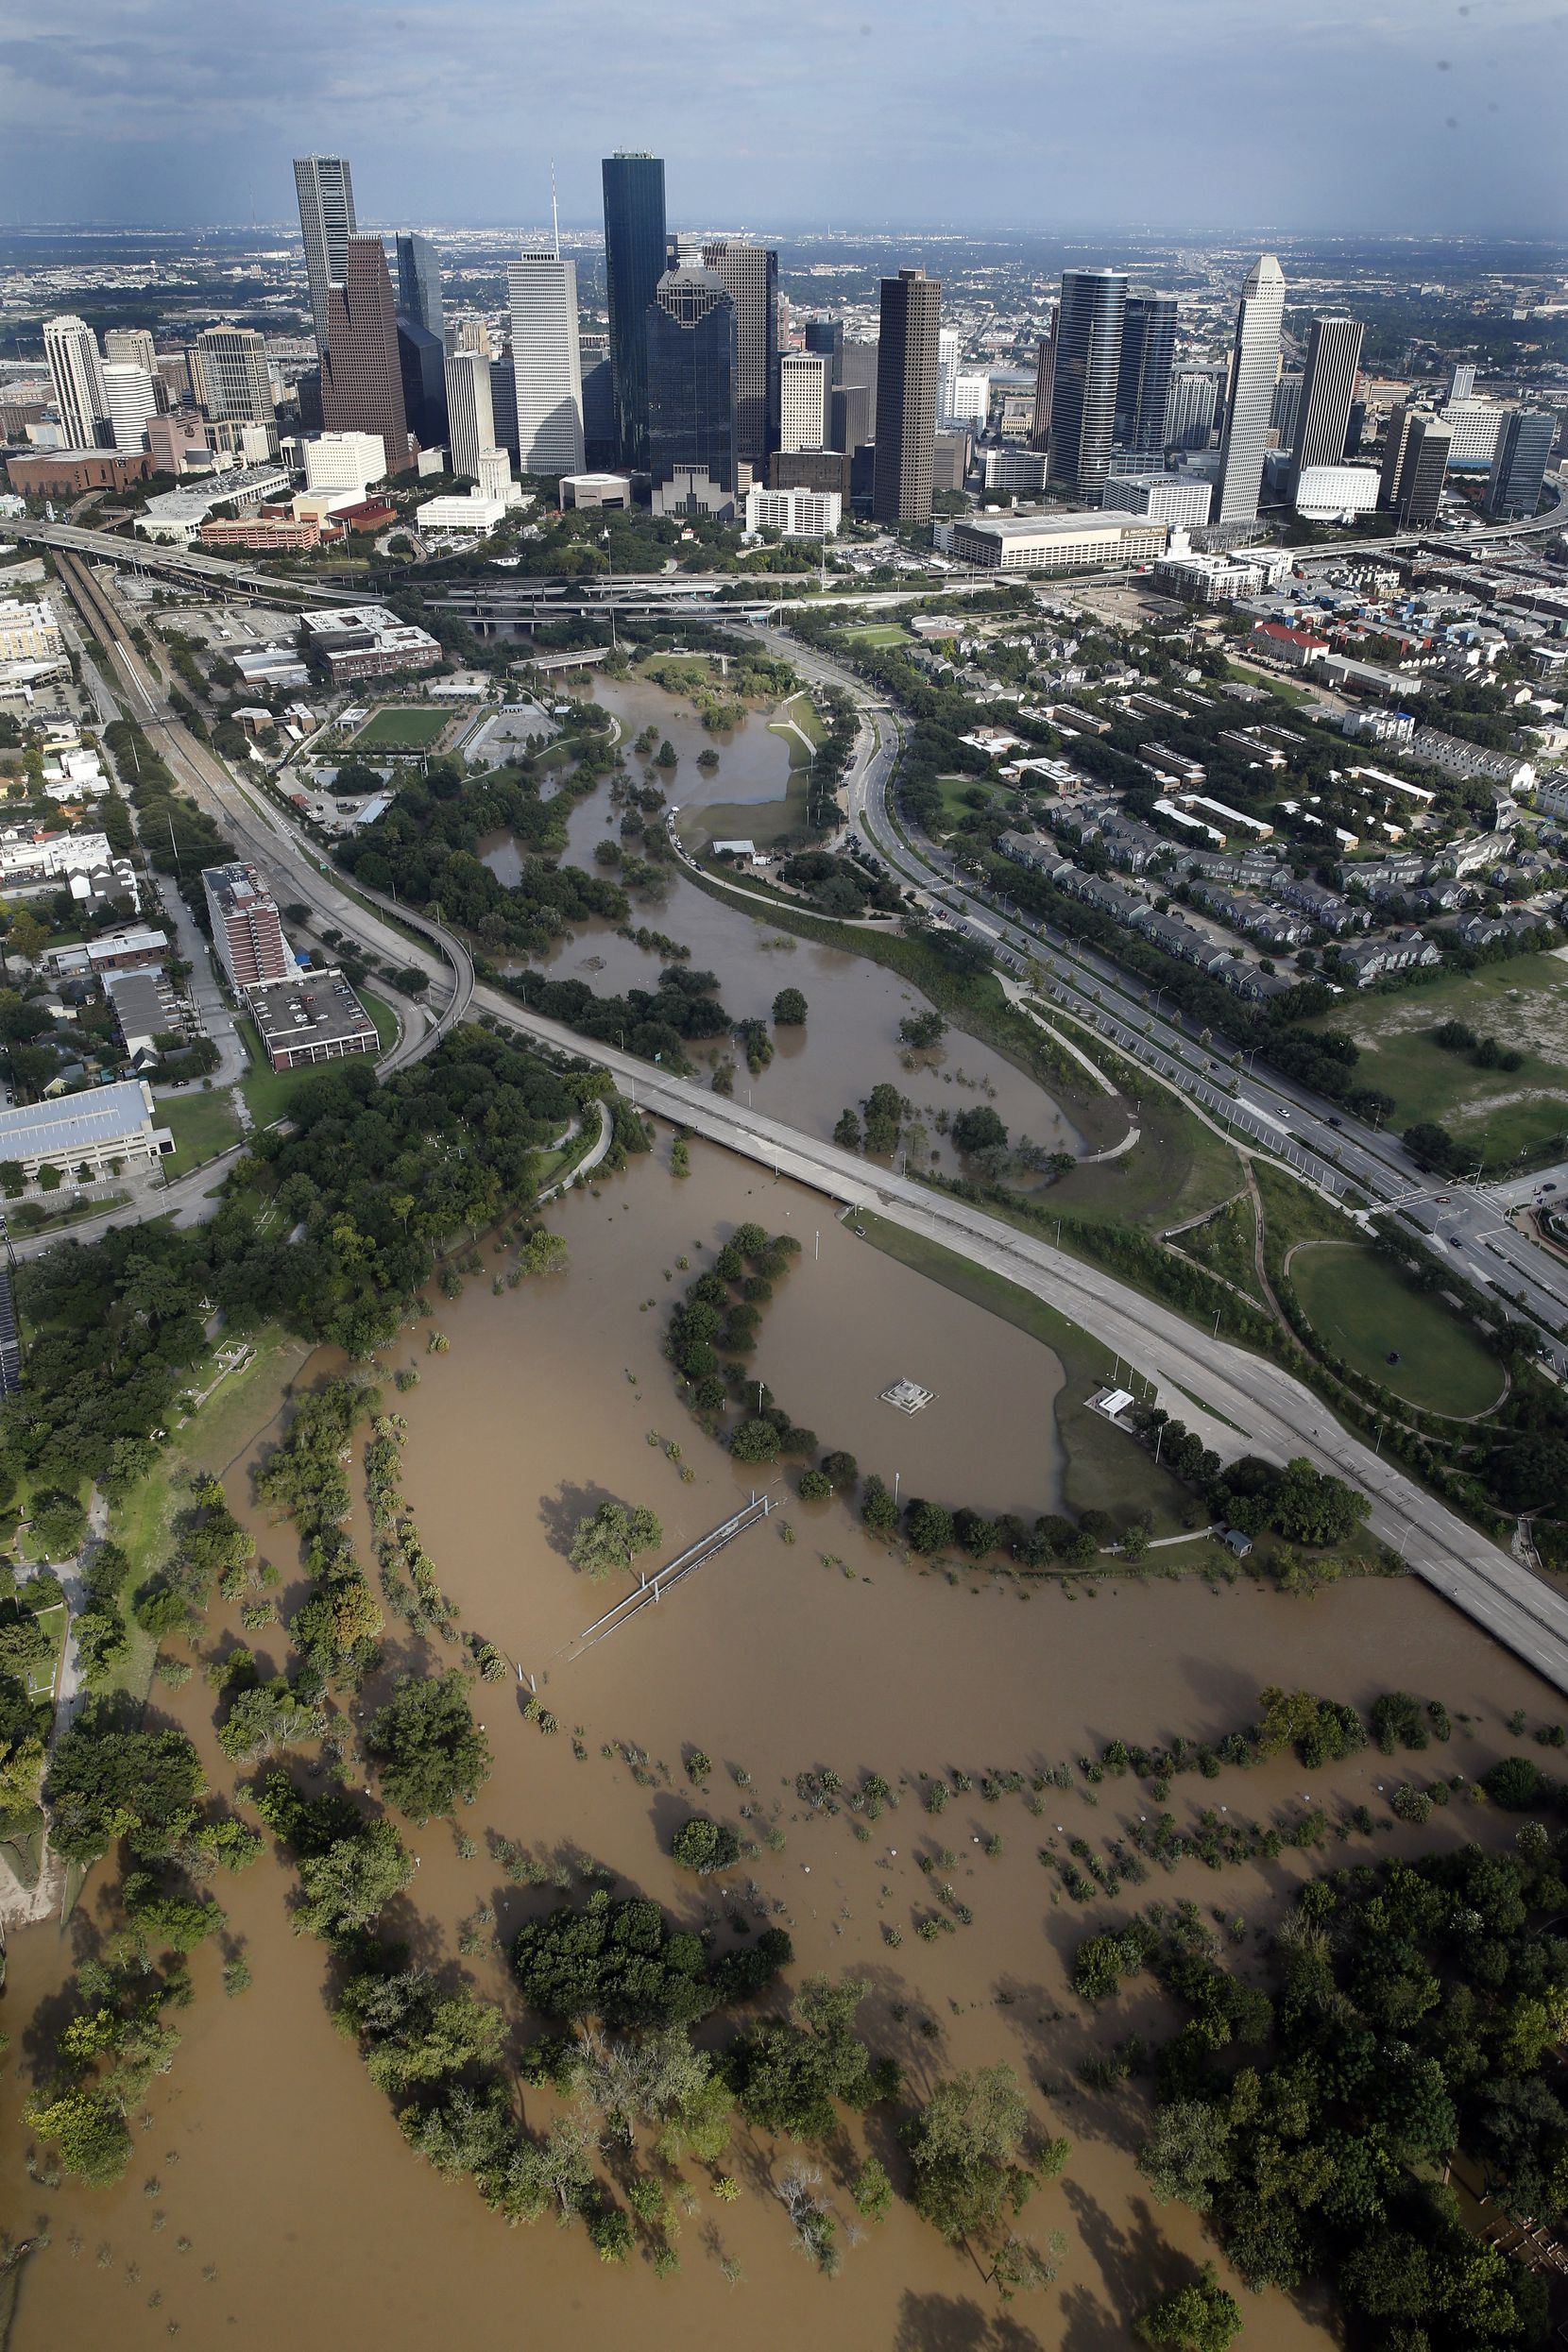 The swollen Buffalo Bayou is pictured in front of the Houston, Texas skyline, Wednesday, August 30, 2017.